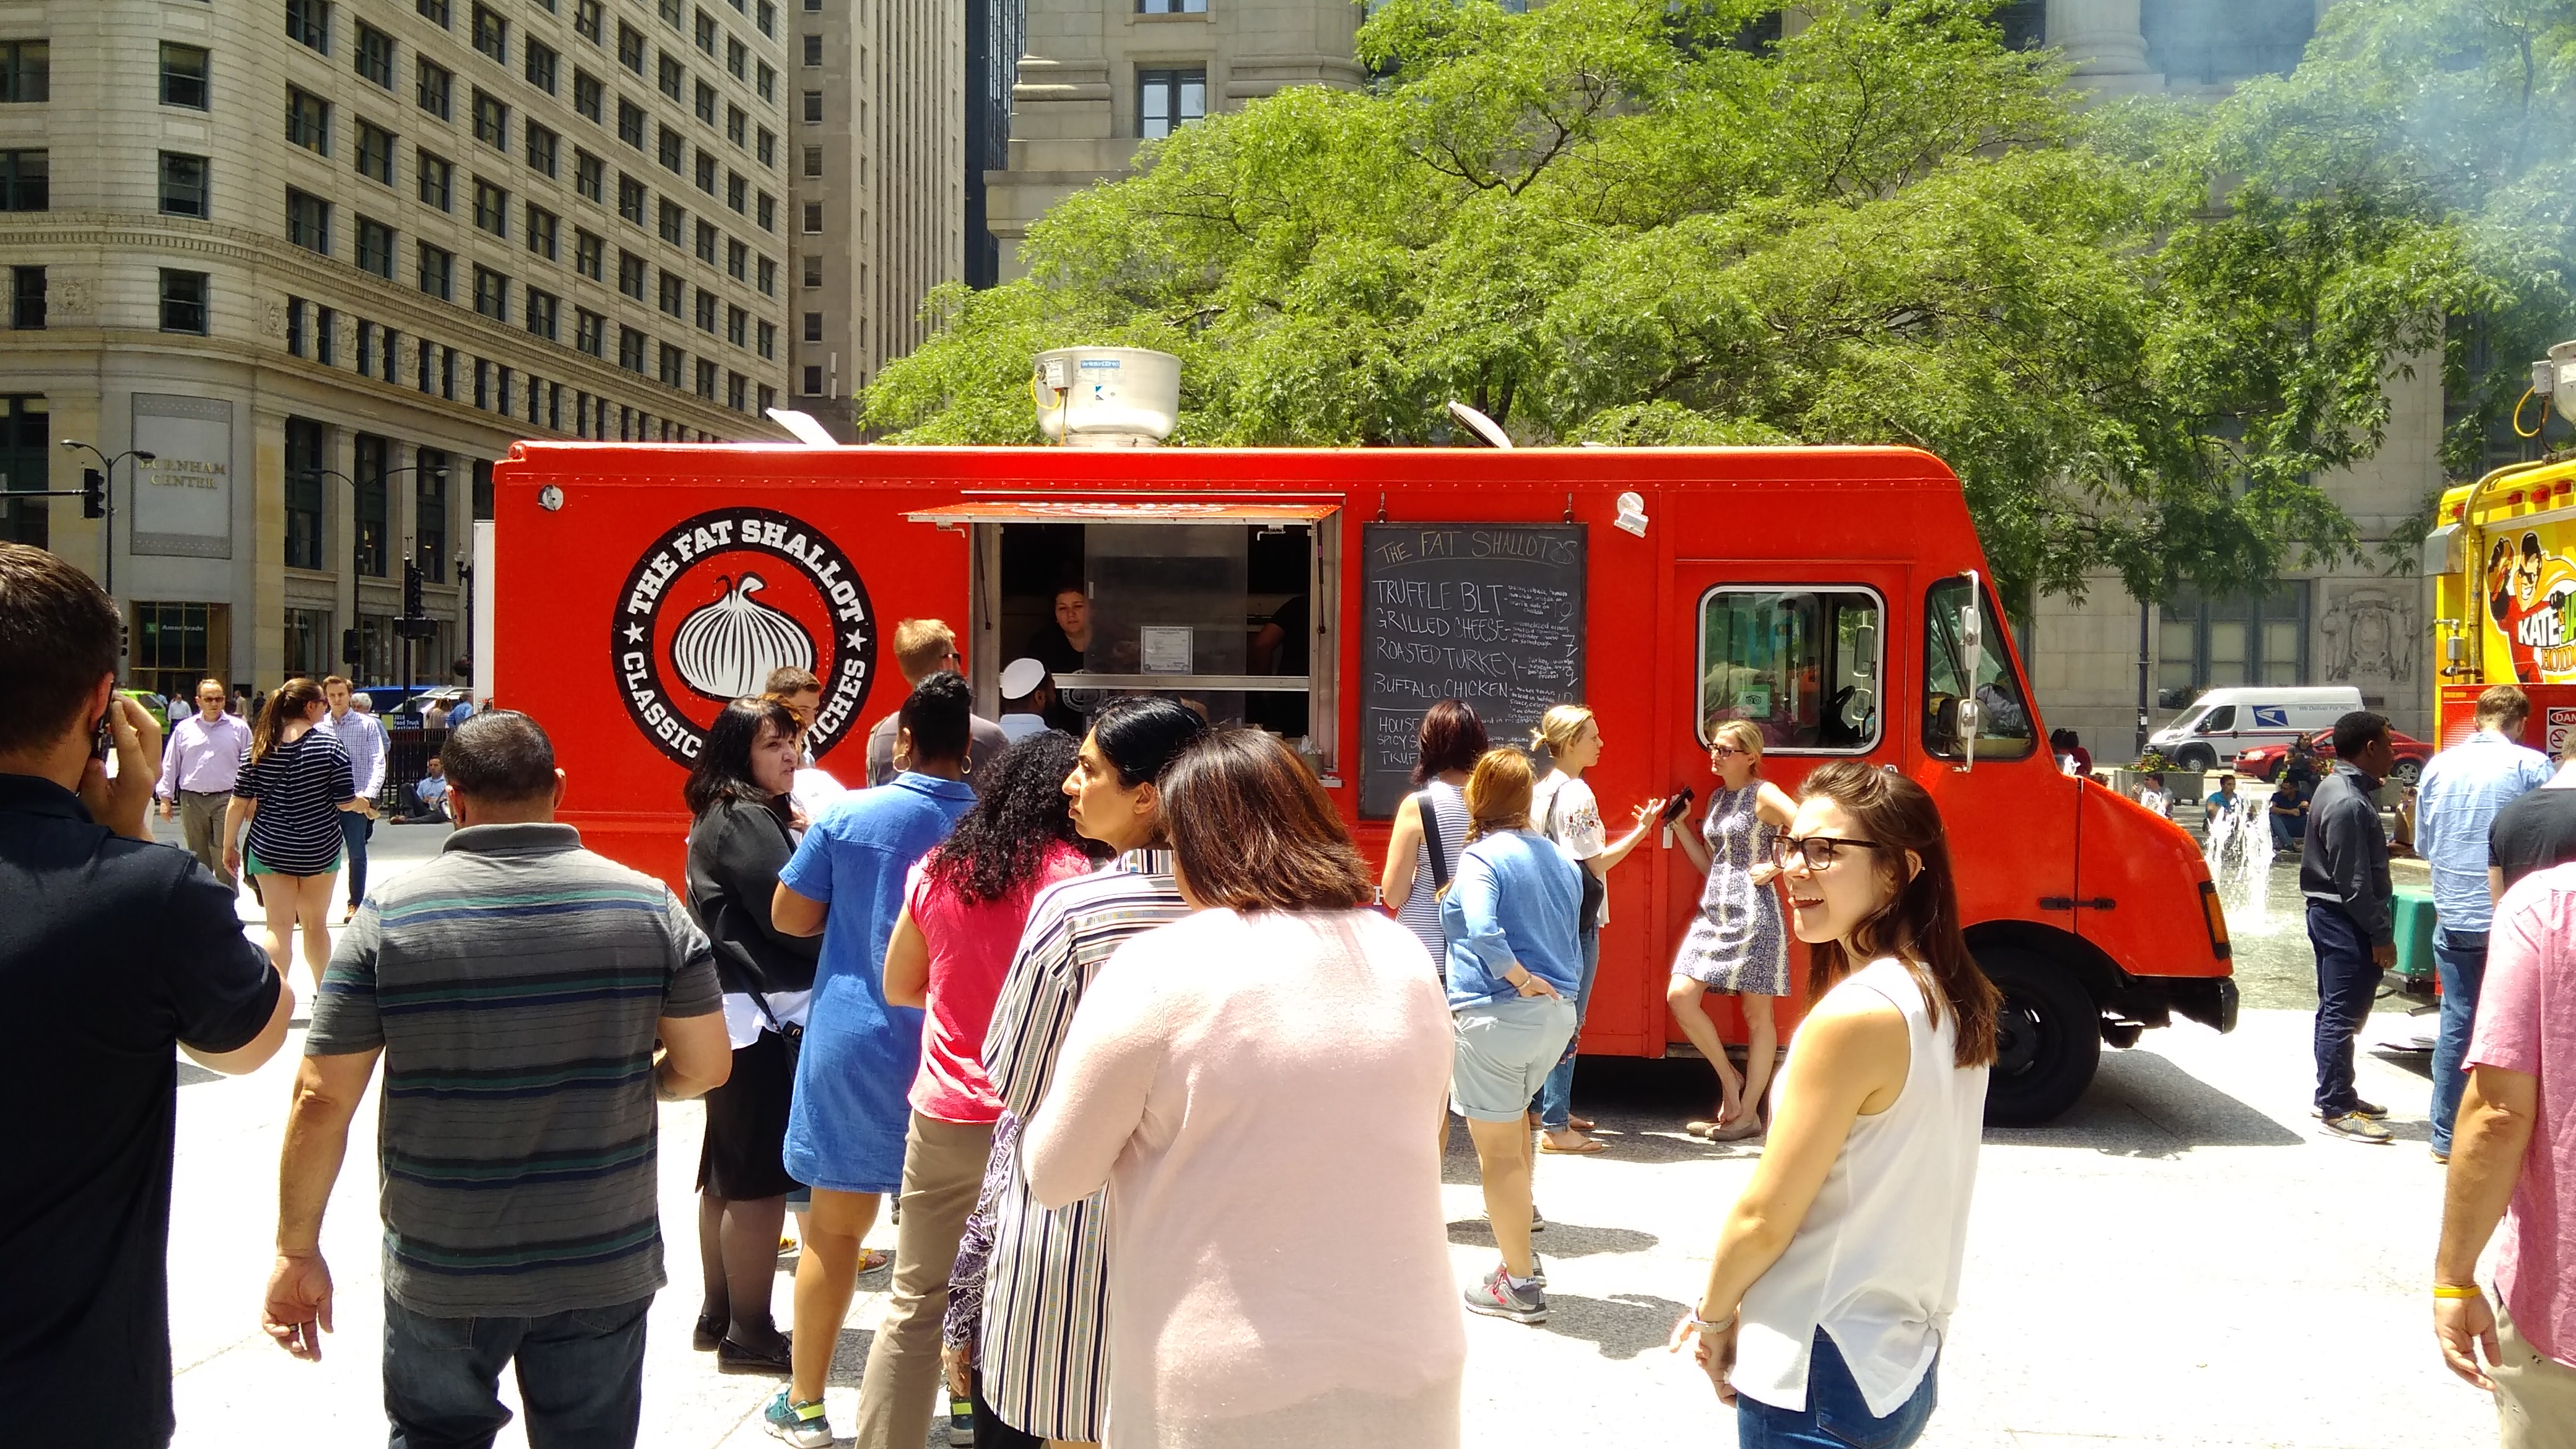 Daley Plaza Food Truck